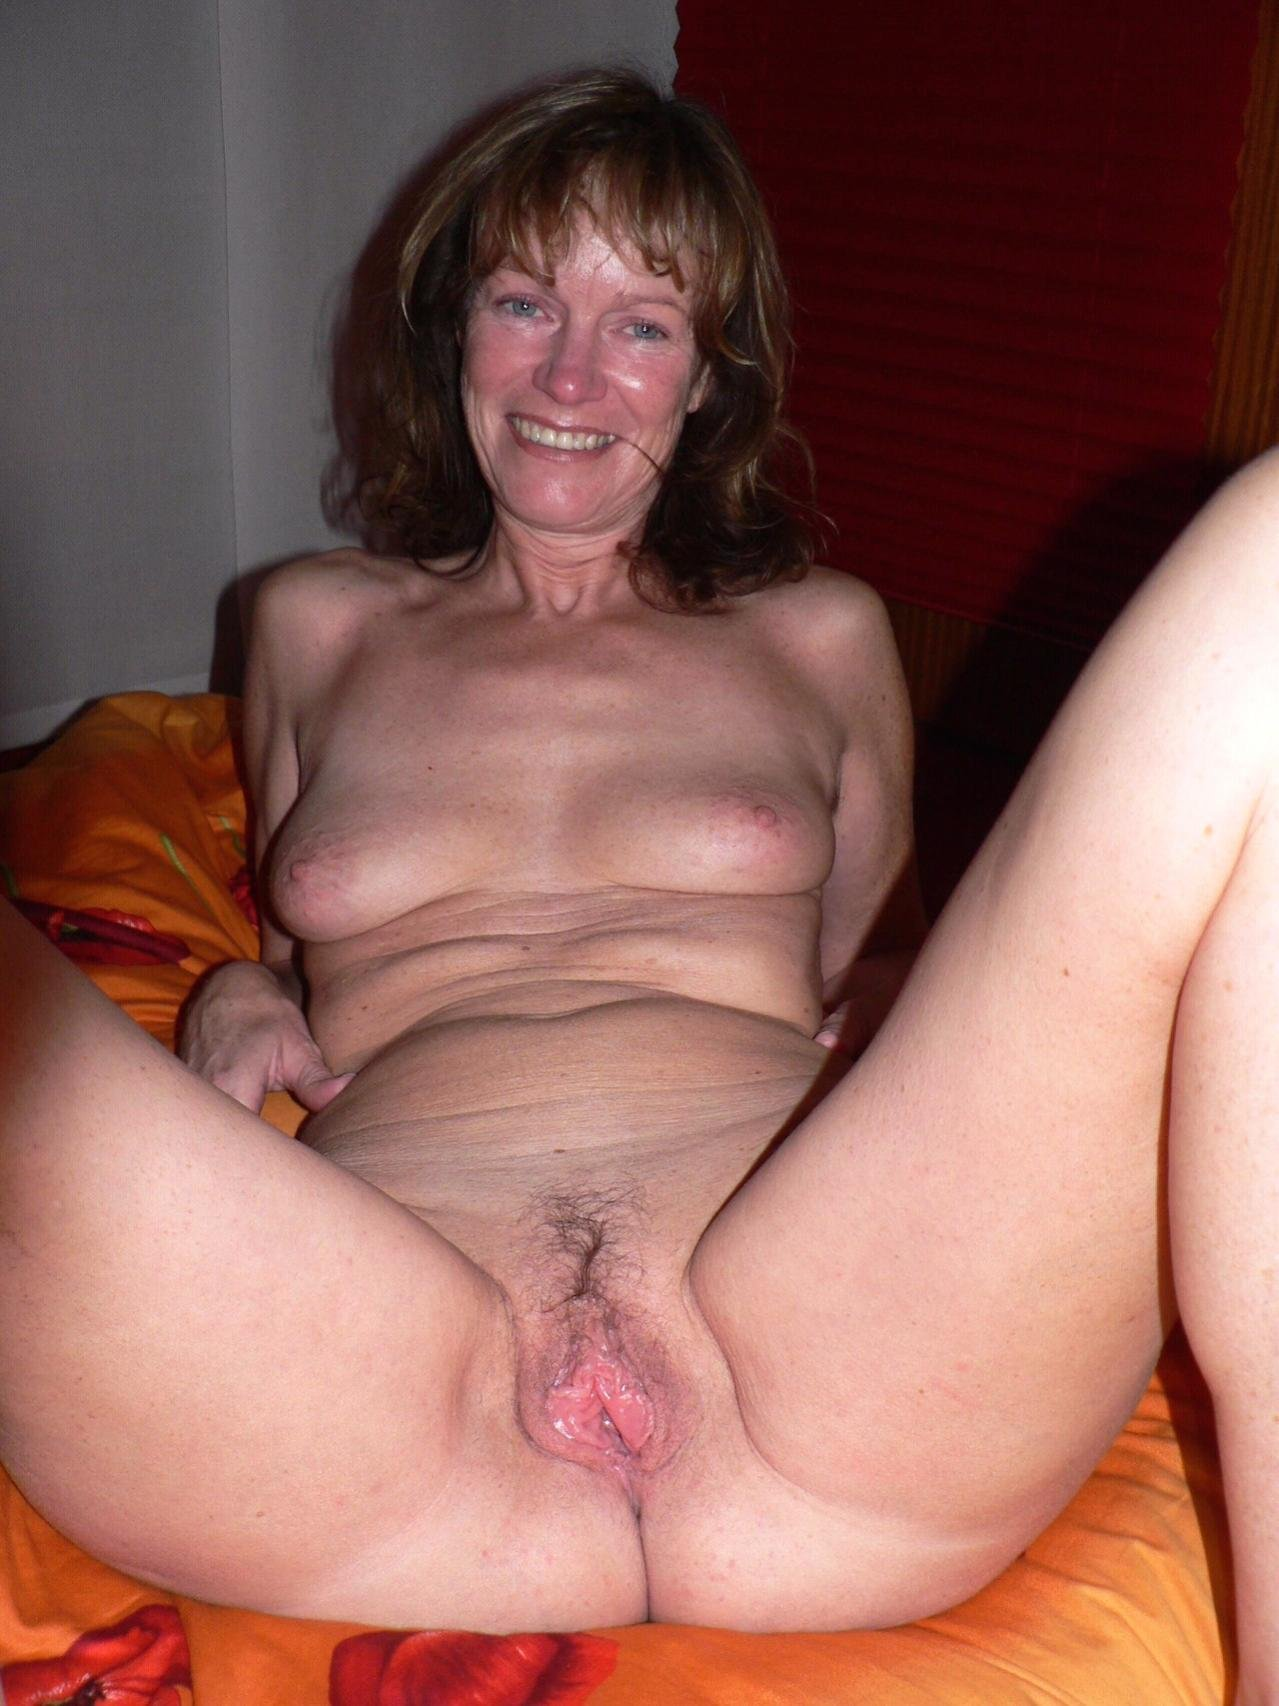 Amater wife threesome #1